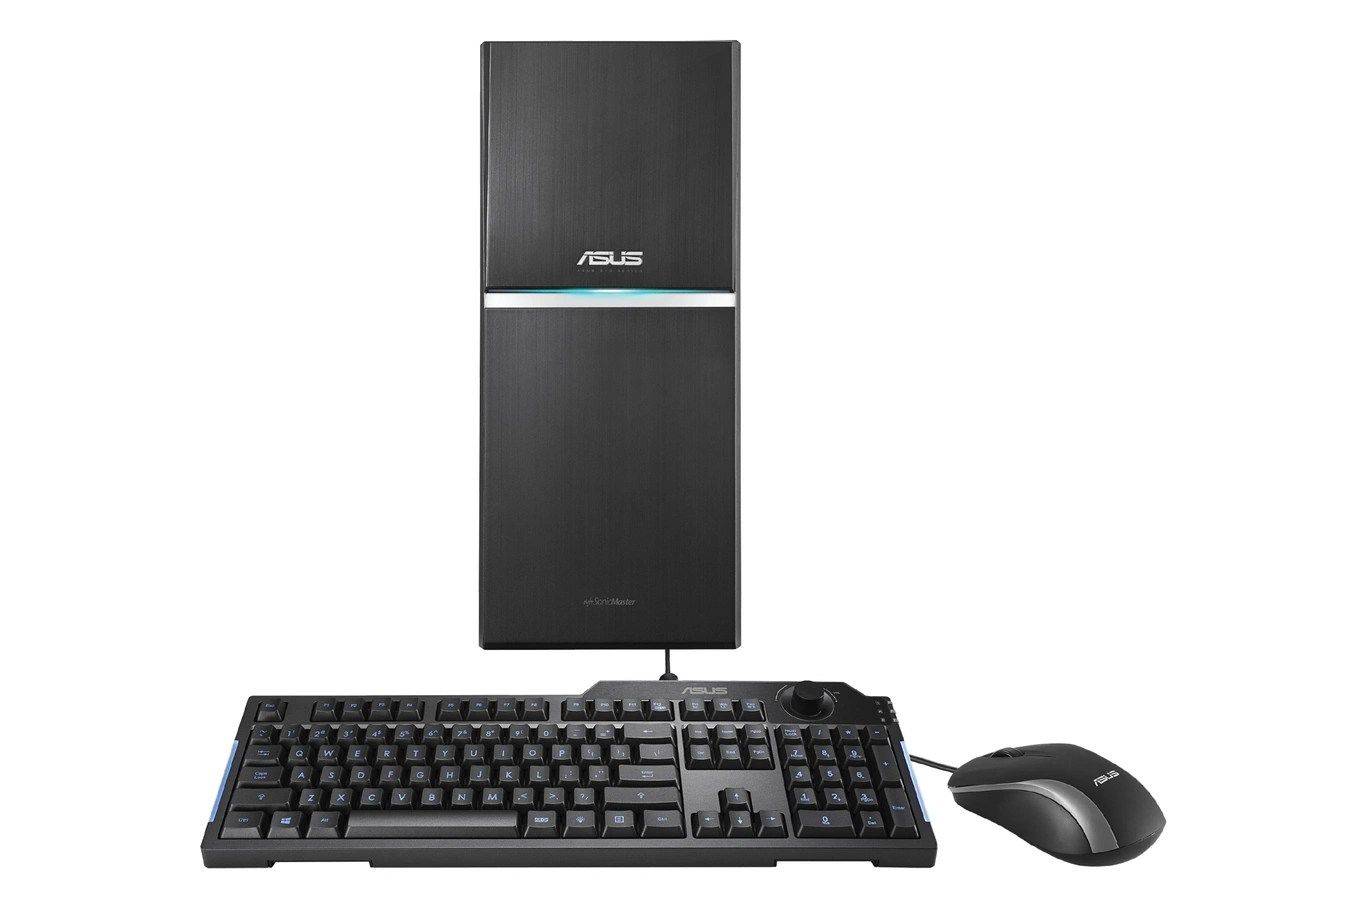 Darty Ordinateur Bureau Pc De Salon Ordinateur Asus De Bureau Plotiro